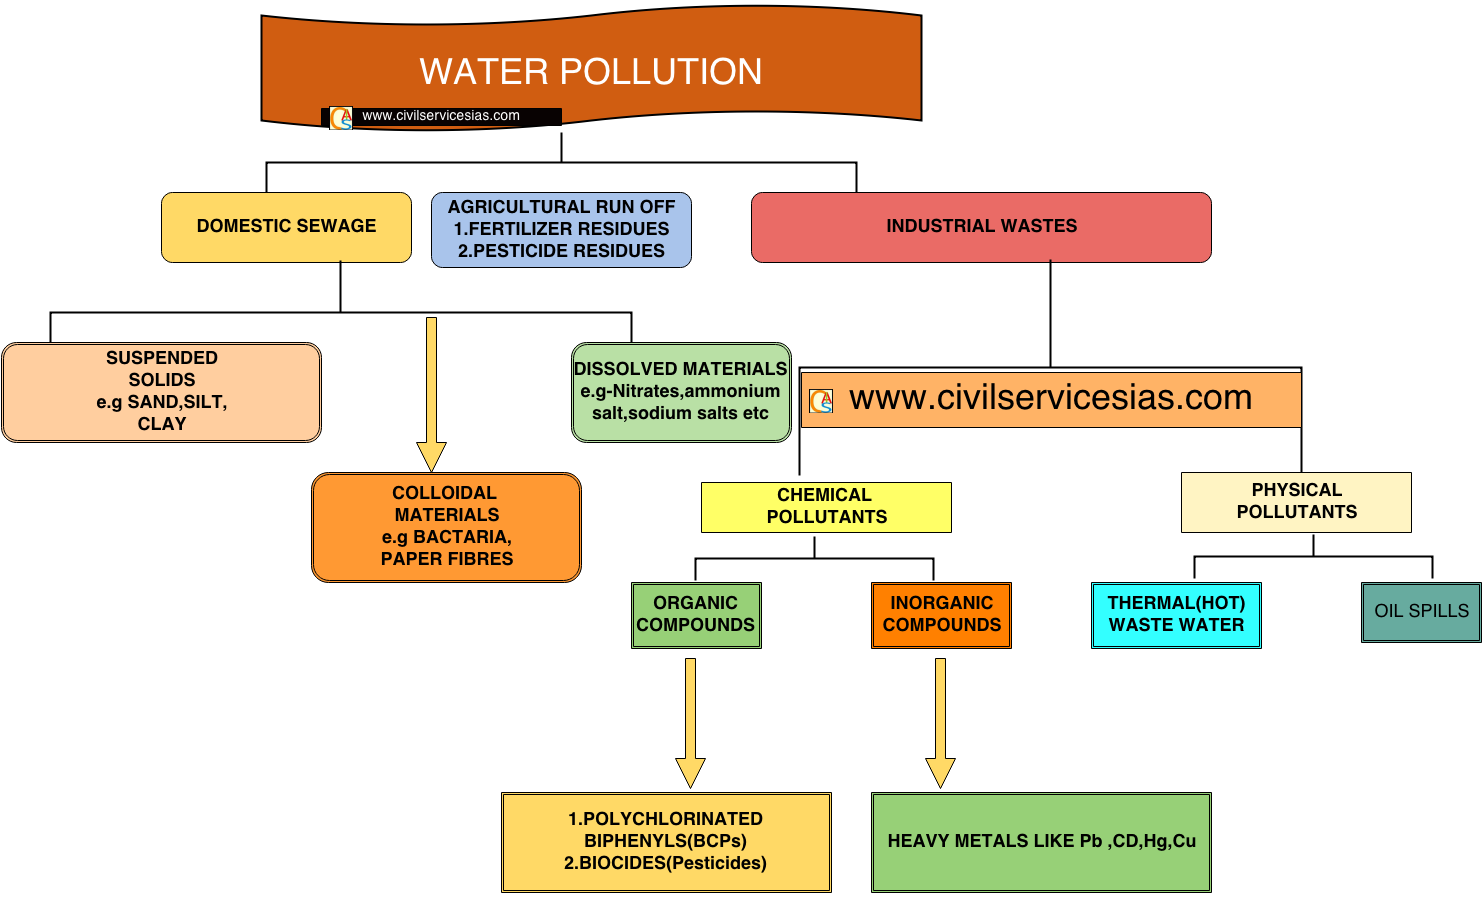 ENVIRONMENTAL ISSUES,CLASS12 NCERT/CBSE CHAPTER 16,GENERAL SCIENCE NOTES FOR IAS,IPS UPSC,NCERT,CBSE,WATER POLLUTION,POLLUTION